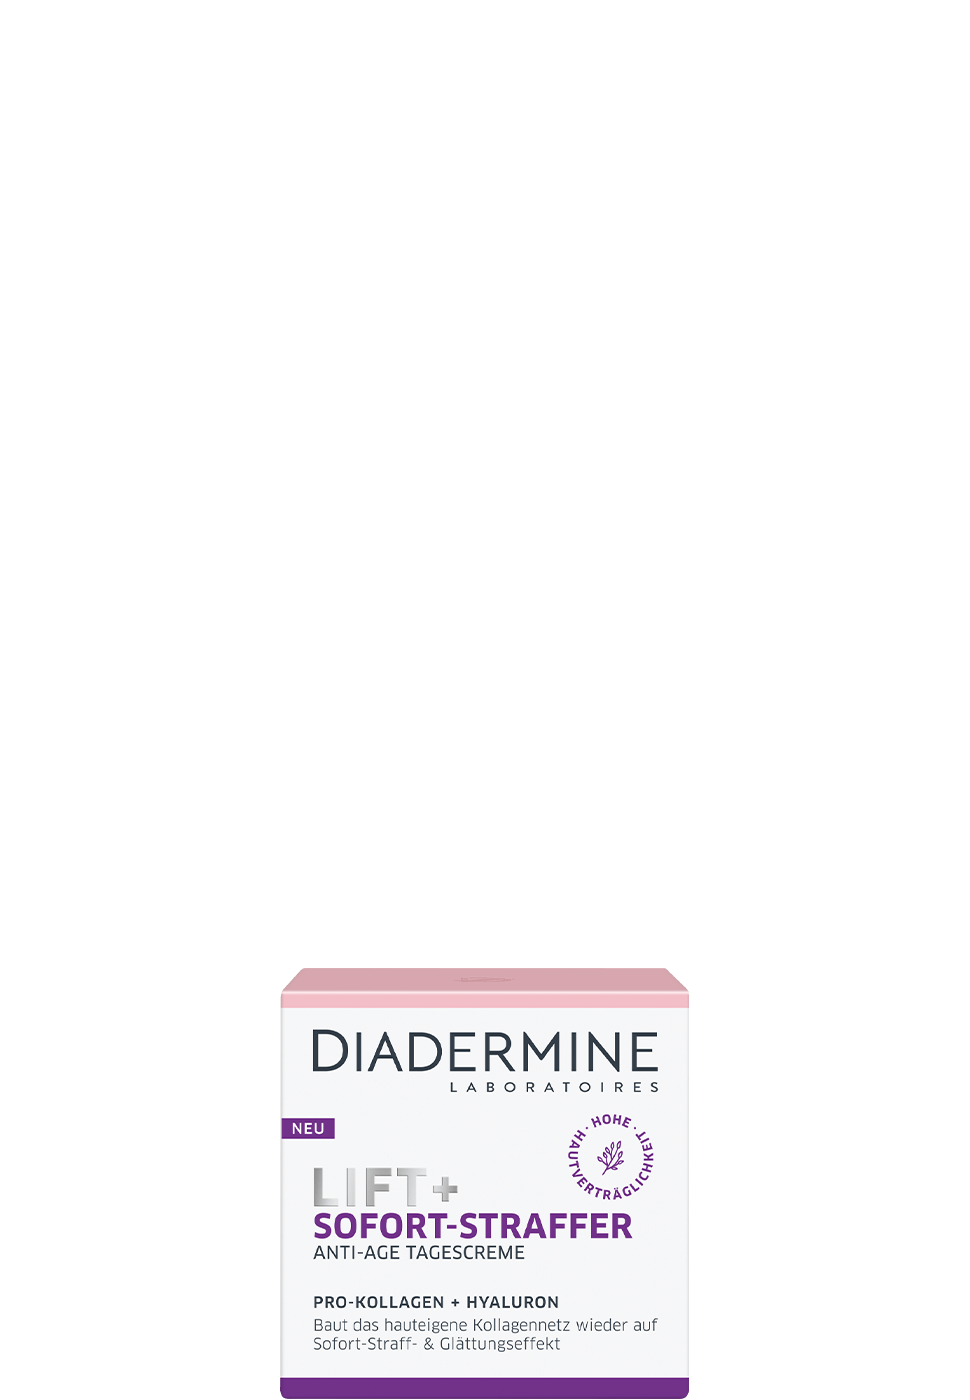 diadermine_at_lift_plus_sofort_straffer_970x1400